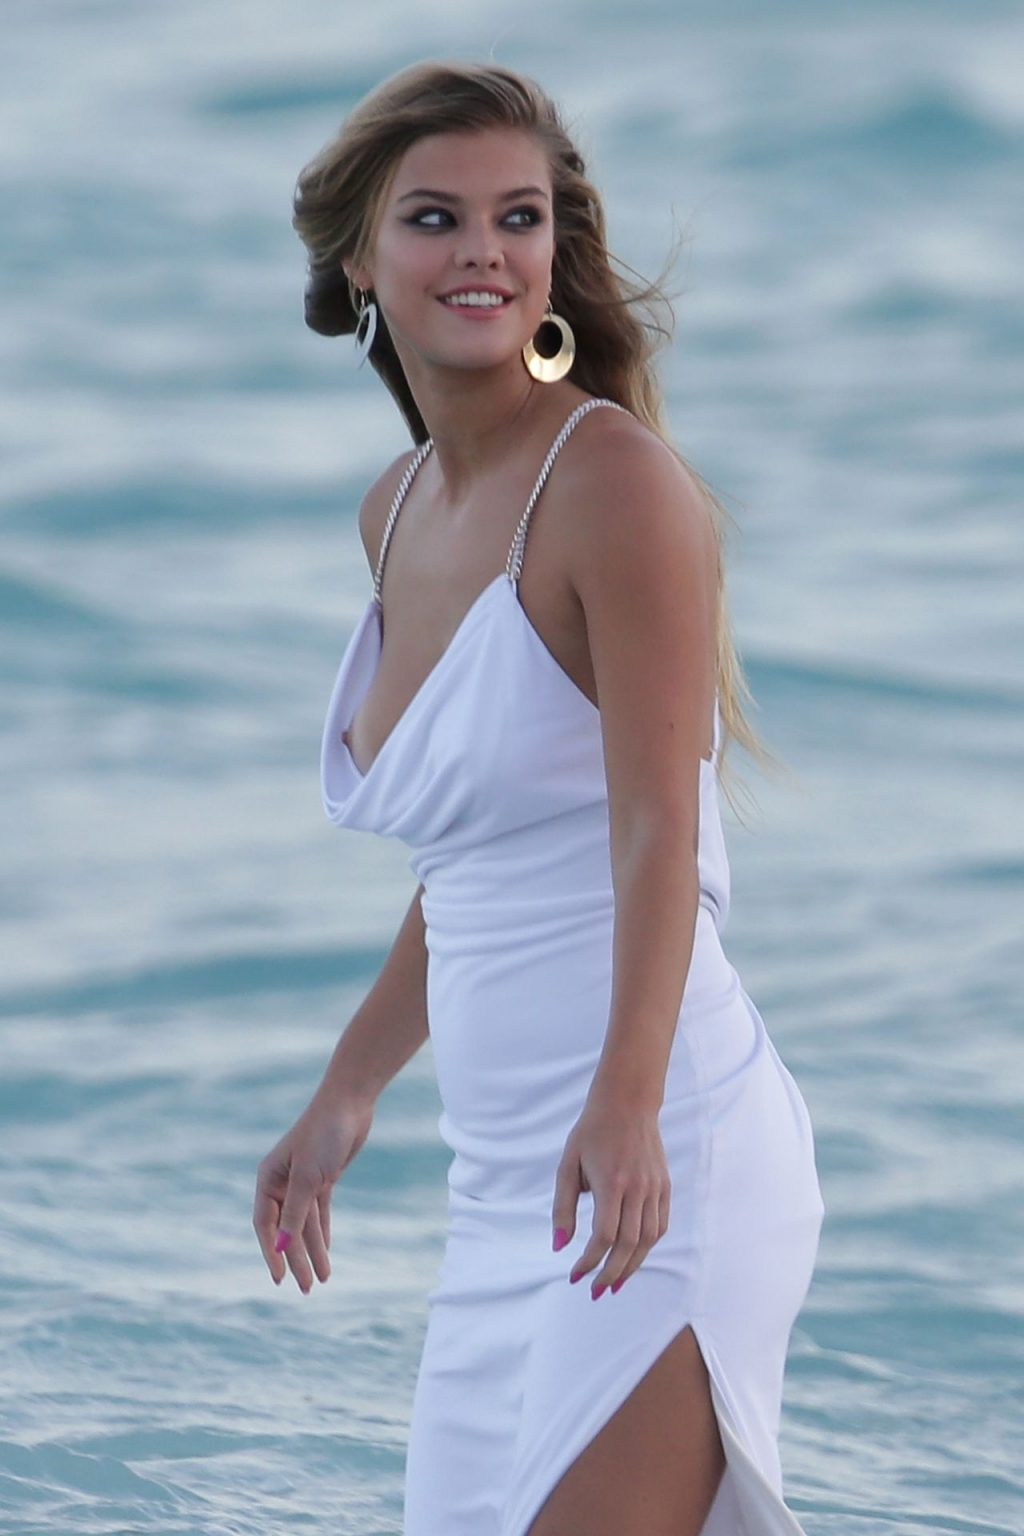 Nina Agdal Has a Couple Wardrobe Malfunctions While Navigating The Surf For a Photoshoot (25 Photos)